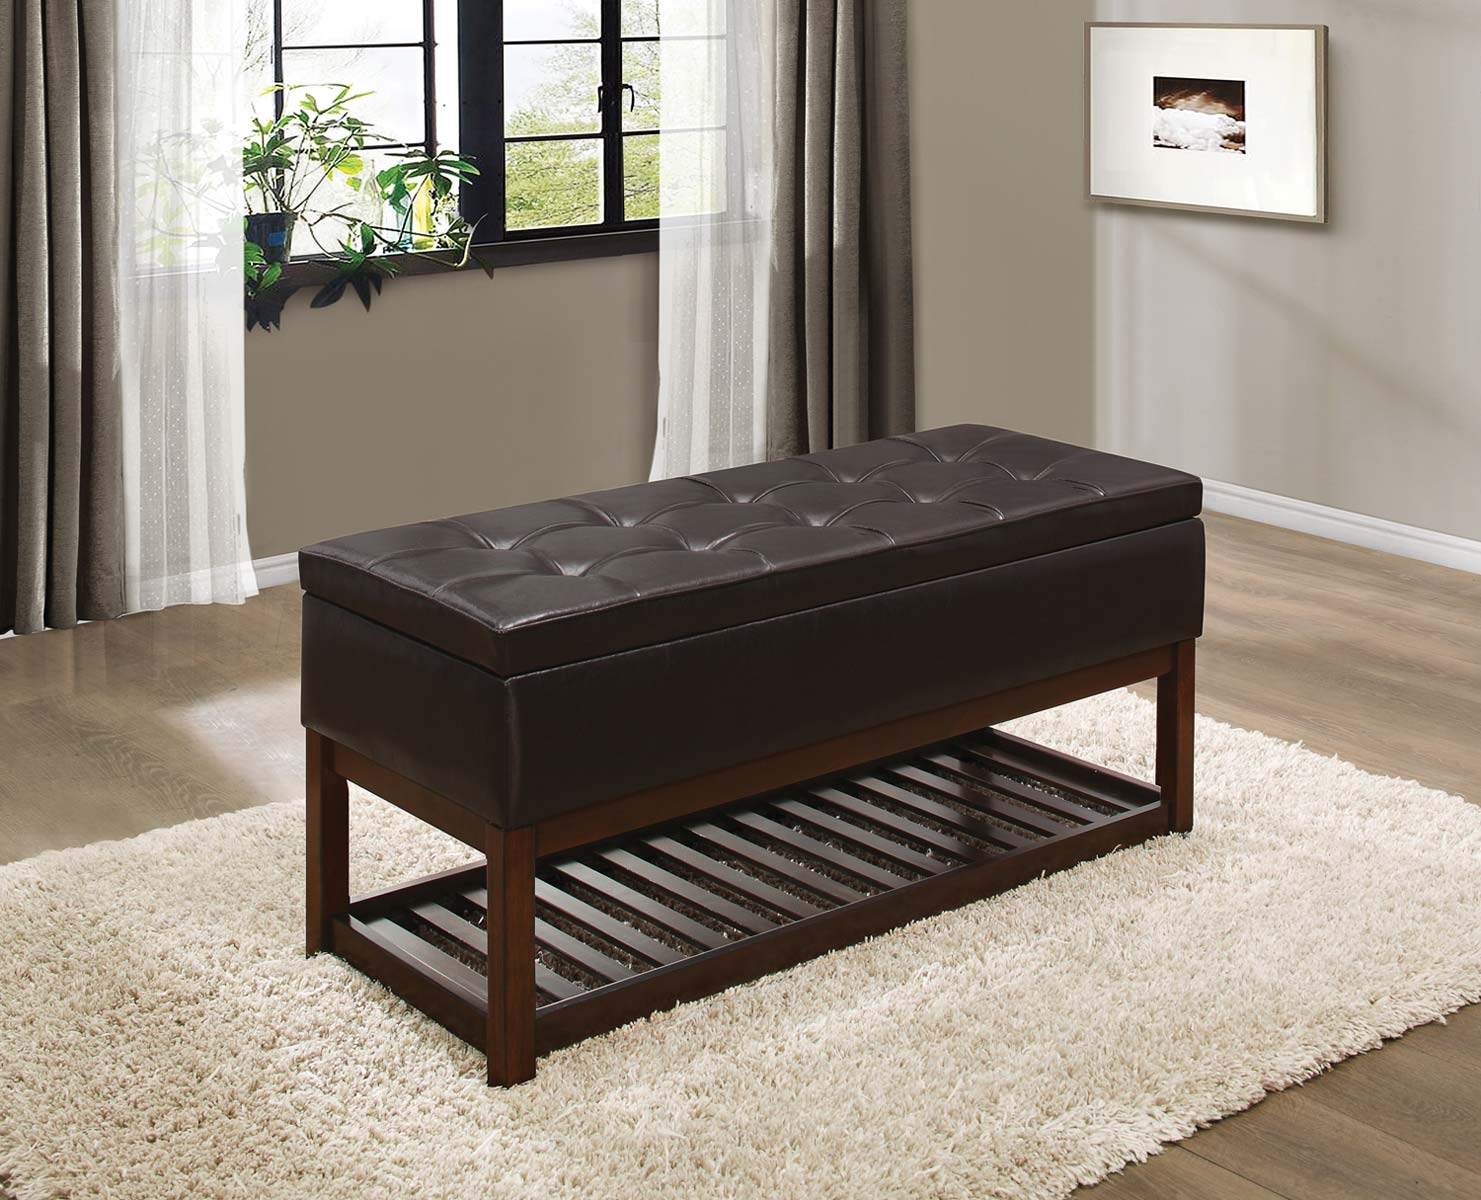 Homelegance Wichfield Lift Top Storage Bench - Dark Brown Bi-Cast Vinyl